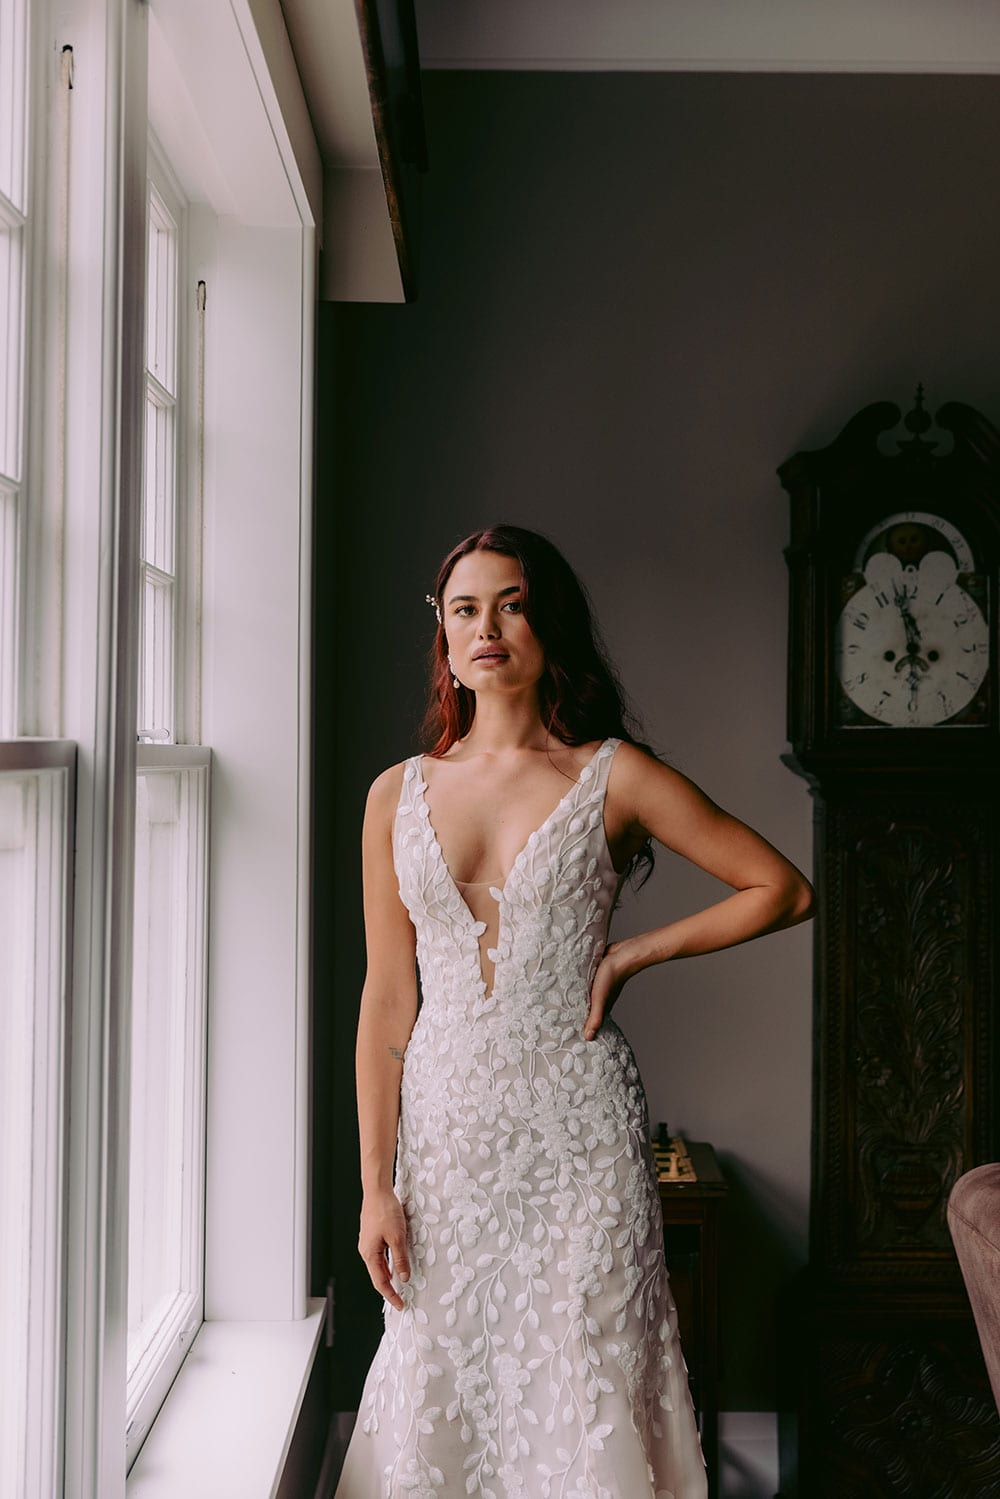 Fleur Wedding gown from Vinka Design - This gorgeous lace wedding dress is available in blush or ivory satin organza. Beautiful embroidered leaf lace, intricately cut and sewn by hand, adorn the bodice & straps and into a soft, flared train. Model wearing gown hand on hip next to full windows highlighting dress.